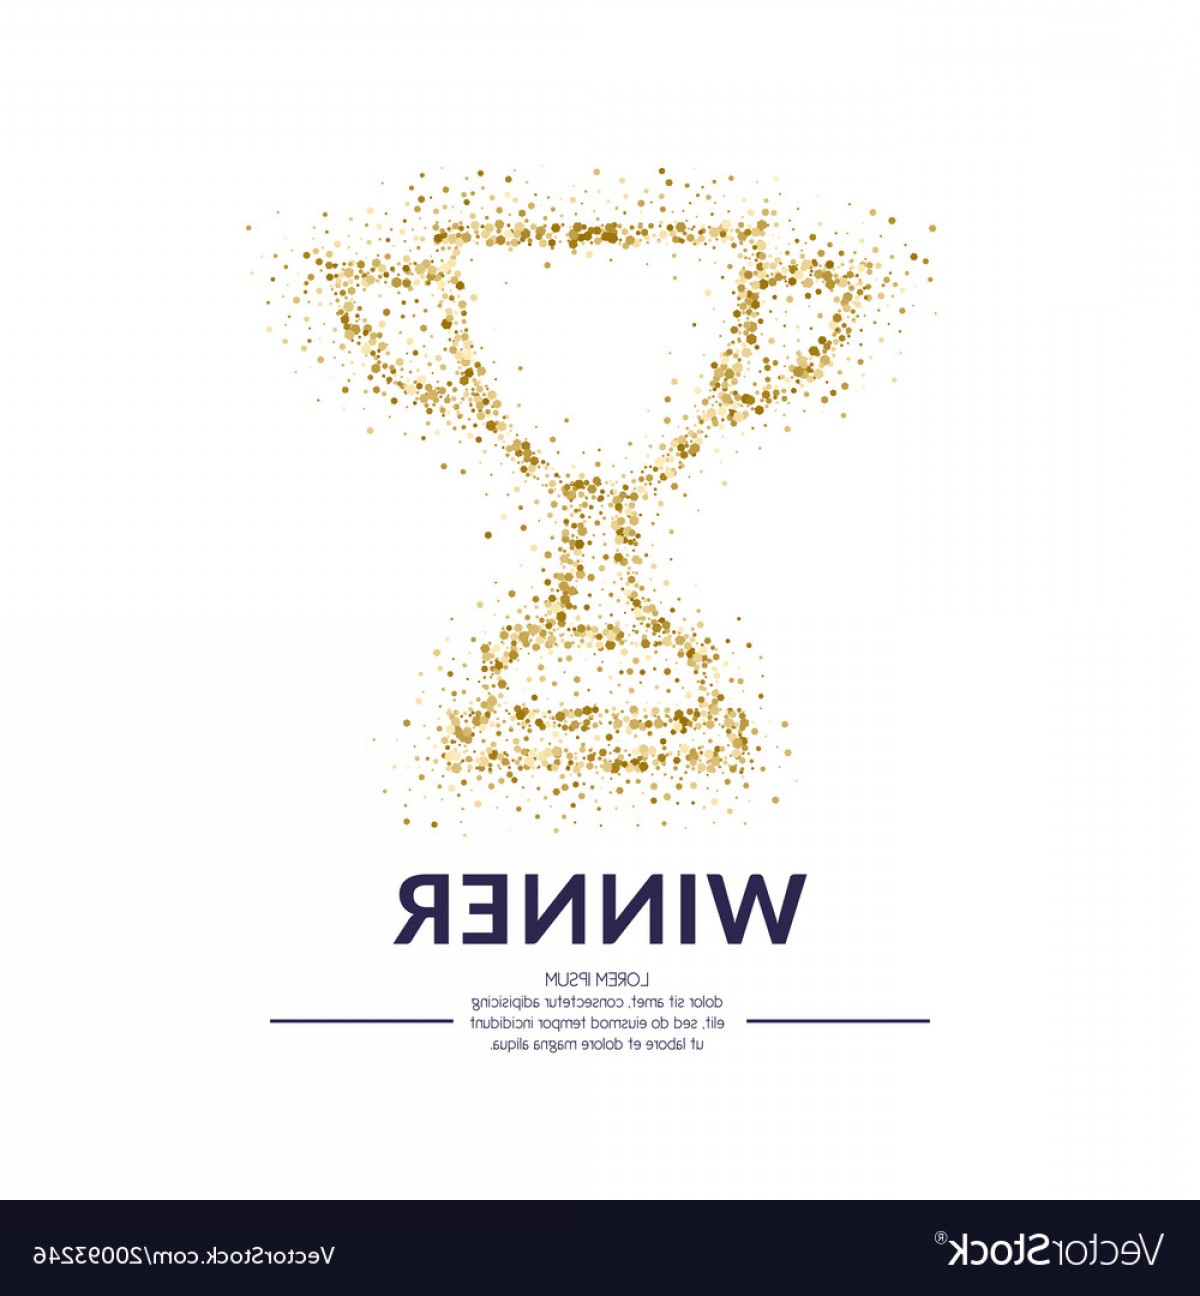 Ice Champions Cup Vector: The Champions Cup Sports Trophy A Prize To The Vector